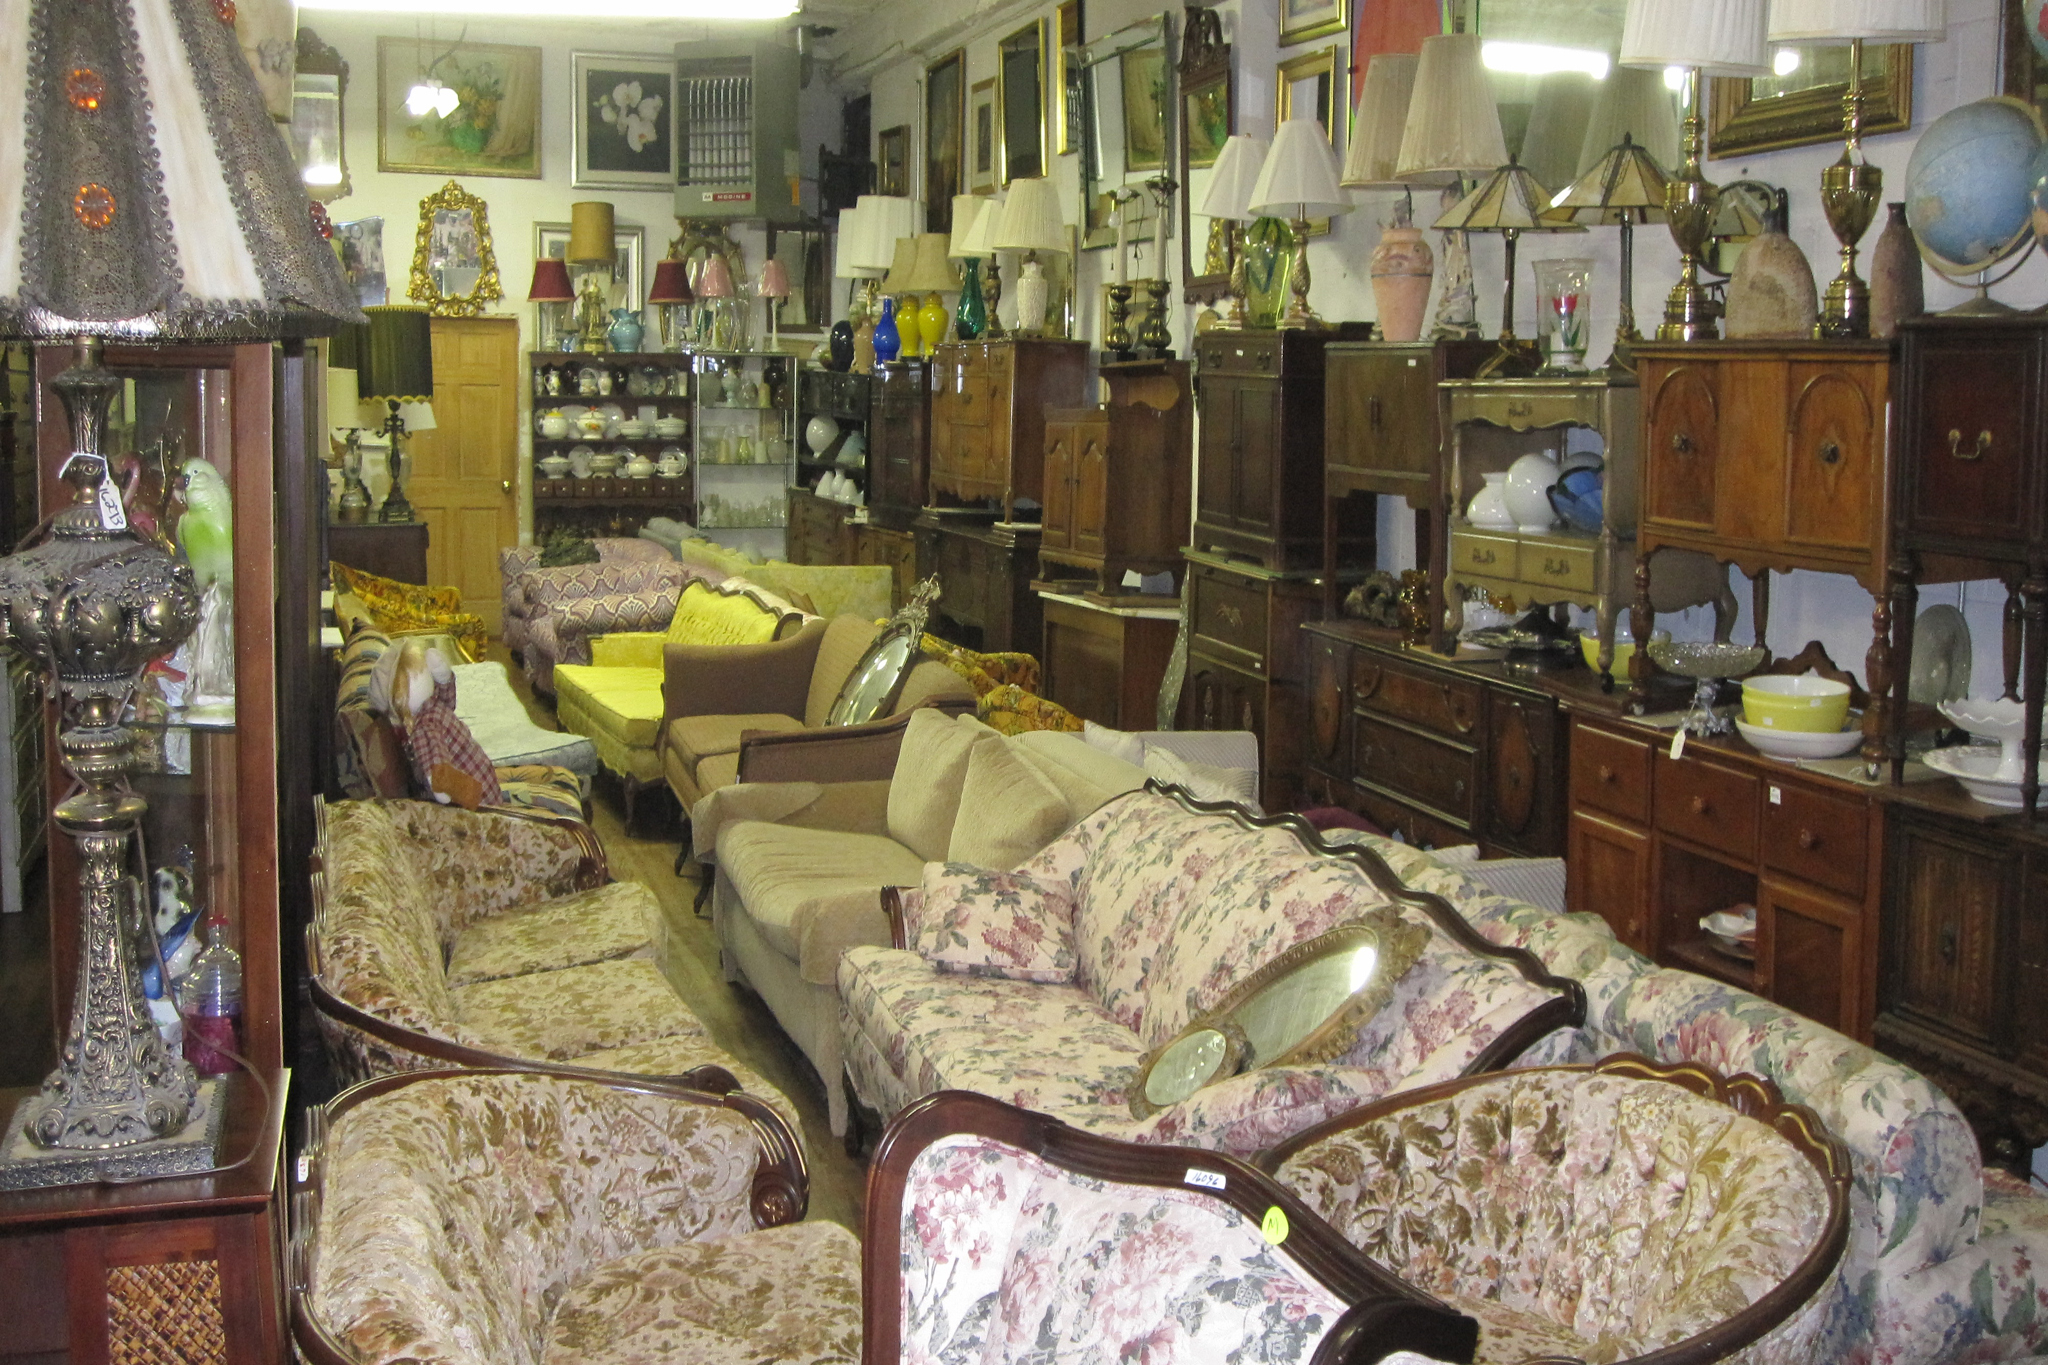 The Furniture Market